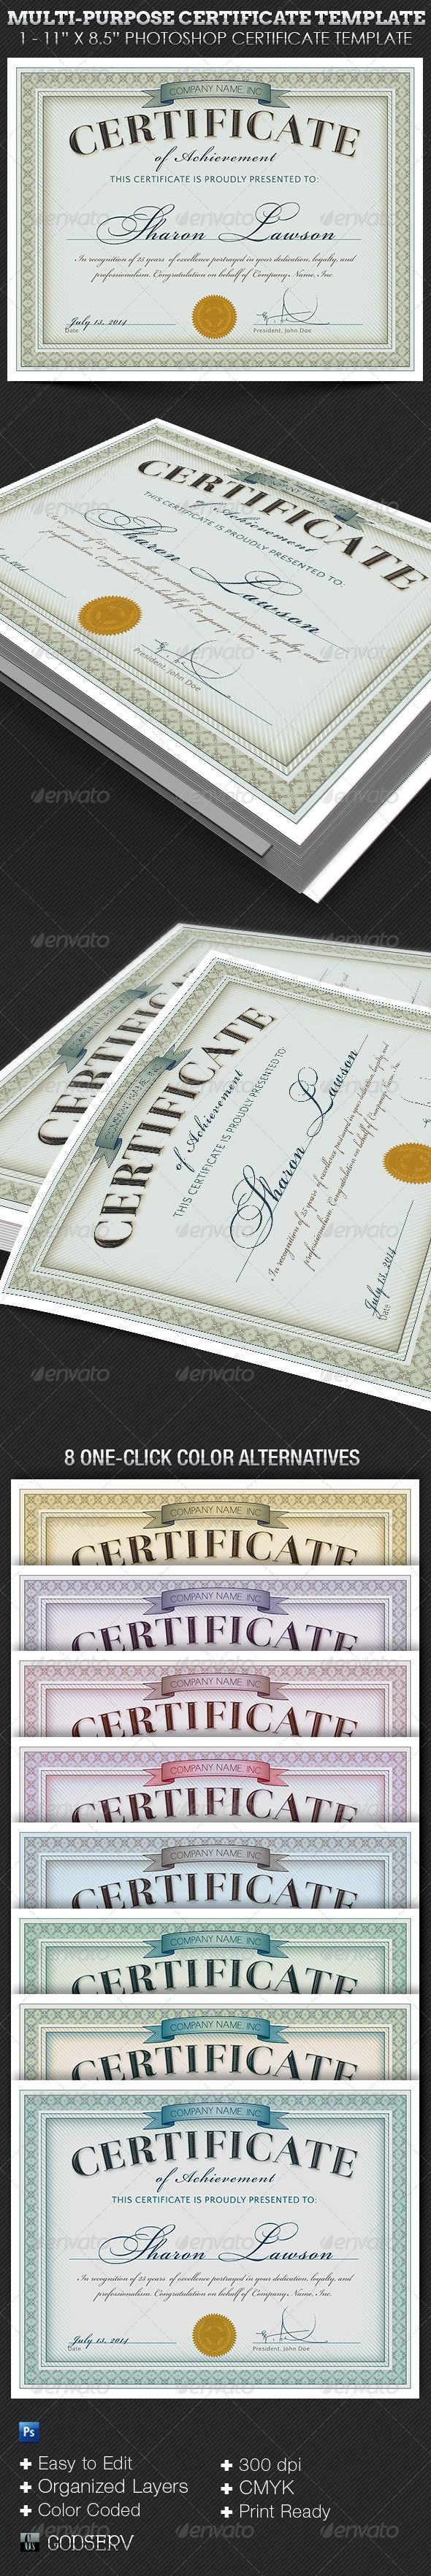 #Multipurpose Certificate #Template - #Certificates #Stationery Download here: https://graphicriver.net/item/multipurpose-certificate-template/6434333?ref=alena994